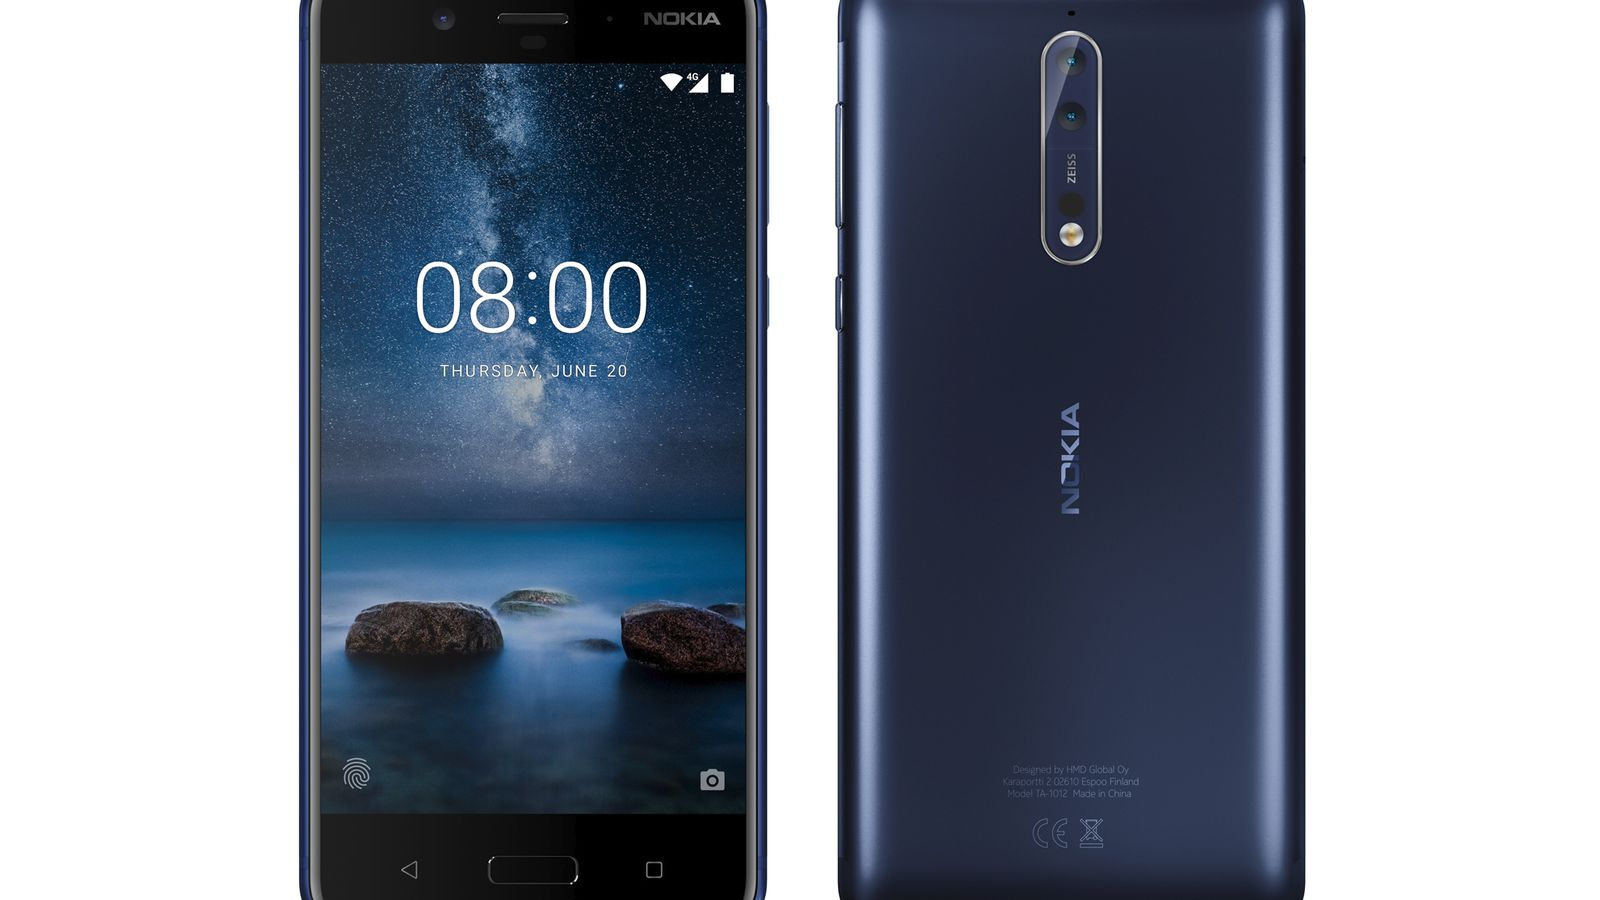 The First Nokia Flagship Android Phone is Launching on August 16th